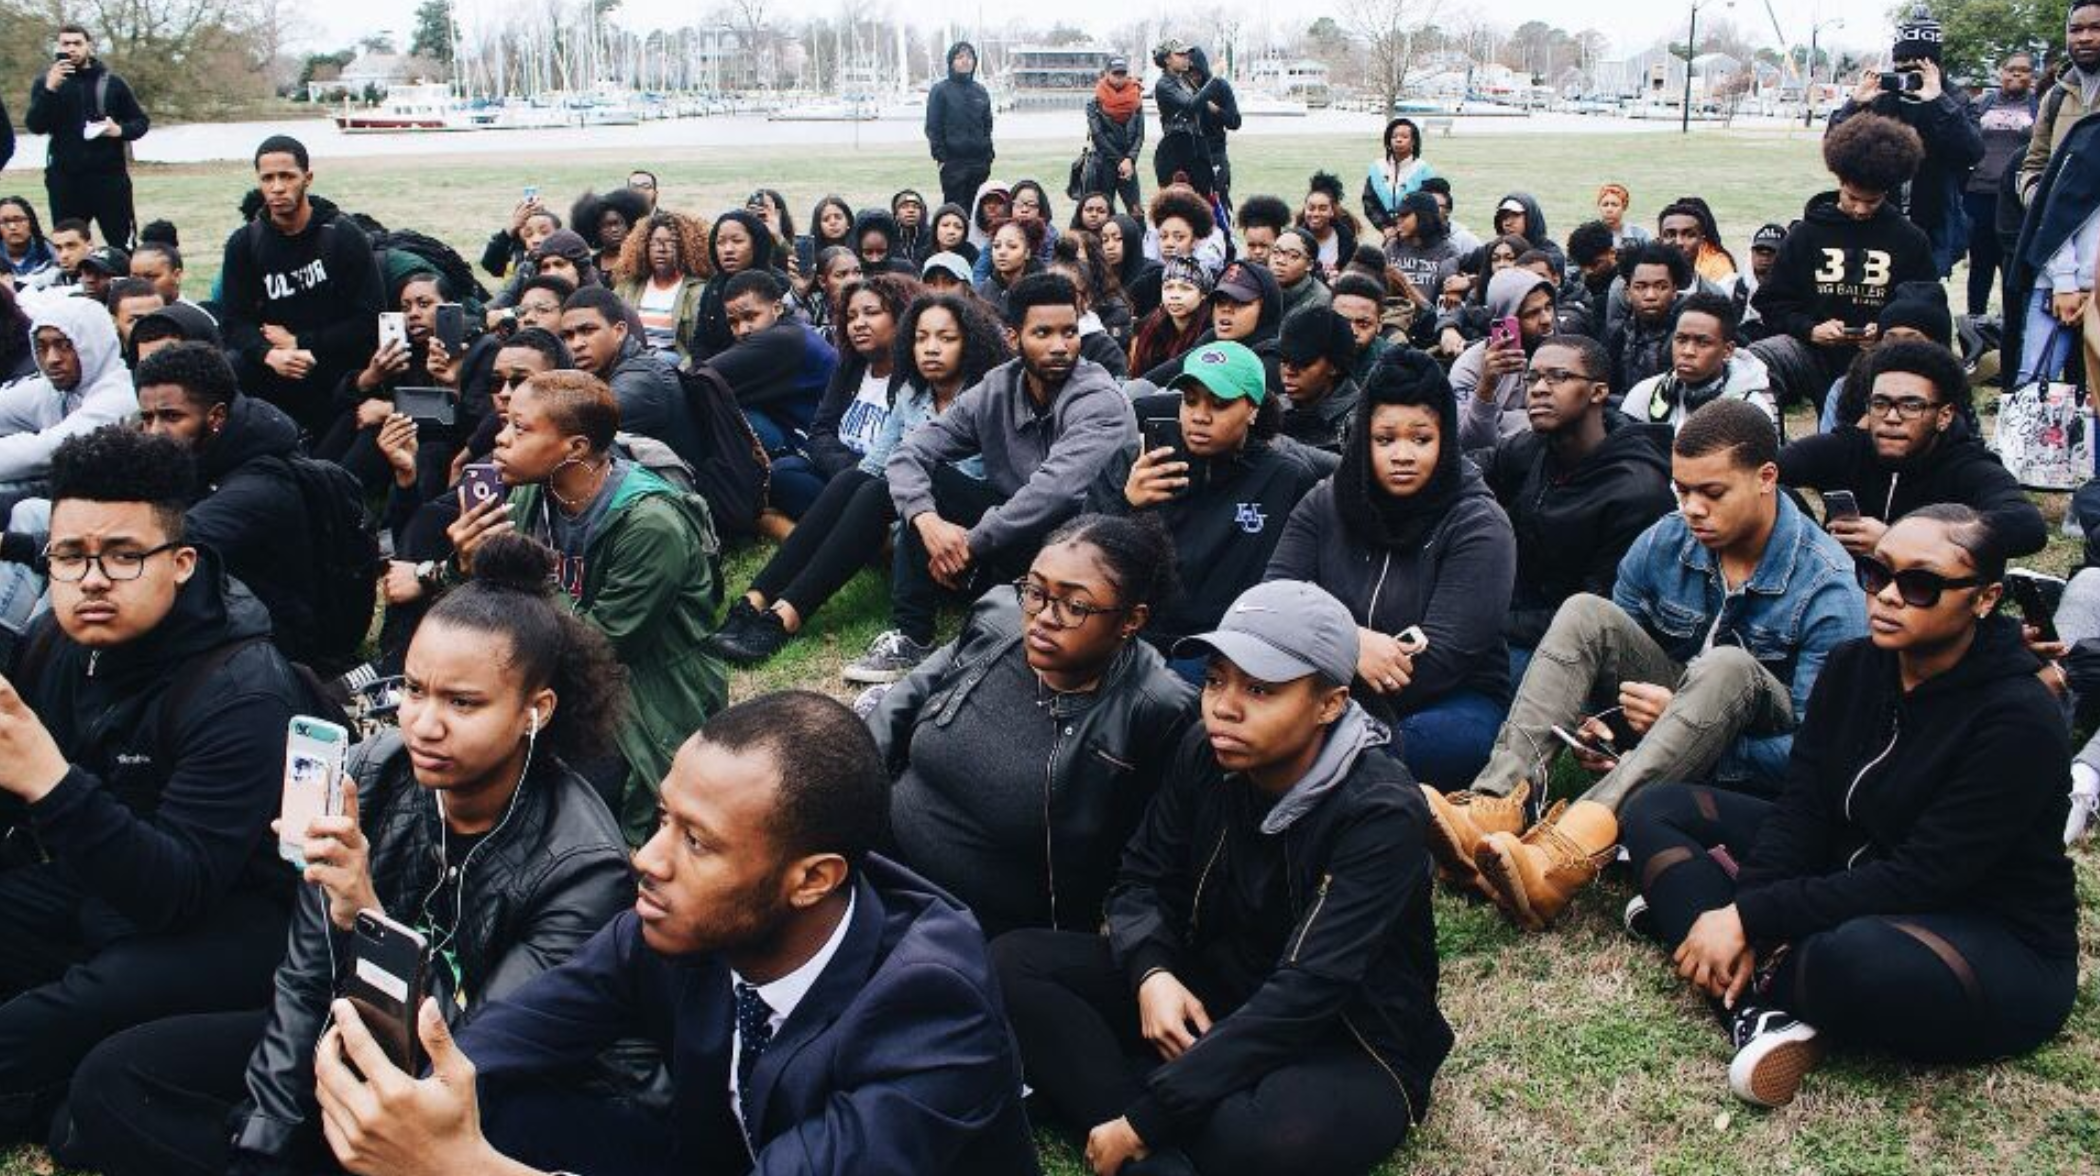 03/02/18: Hampton Univ. students launch #HopeForHampton protest